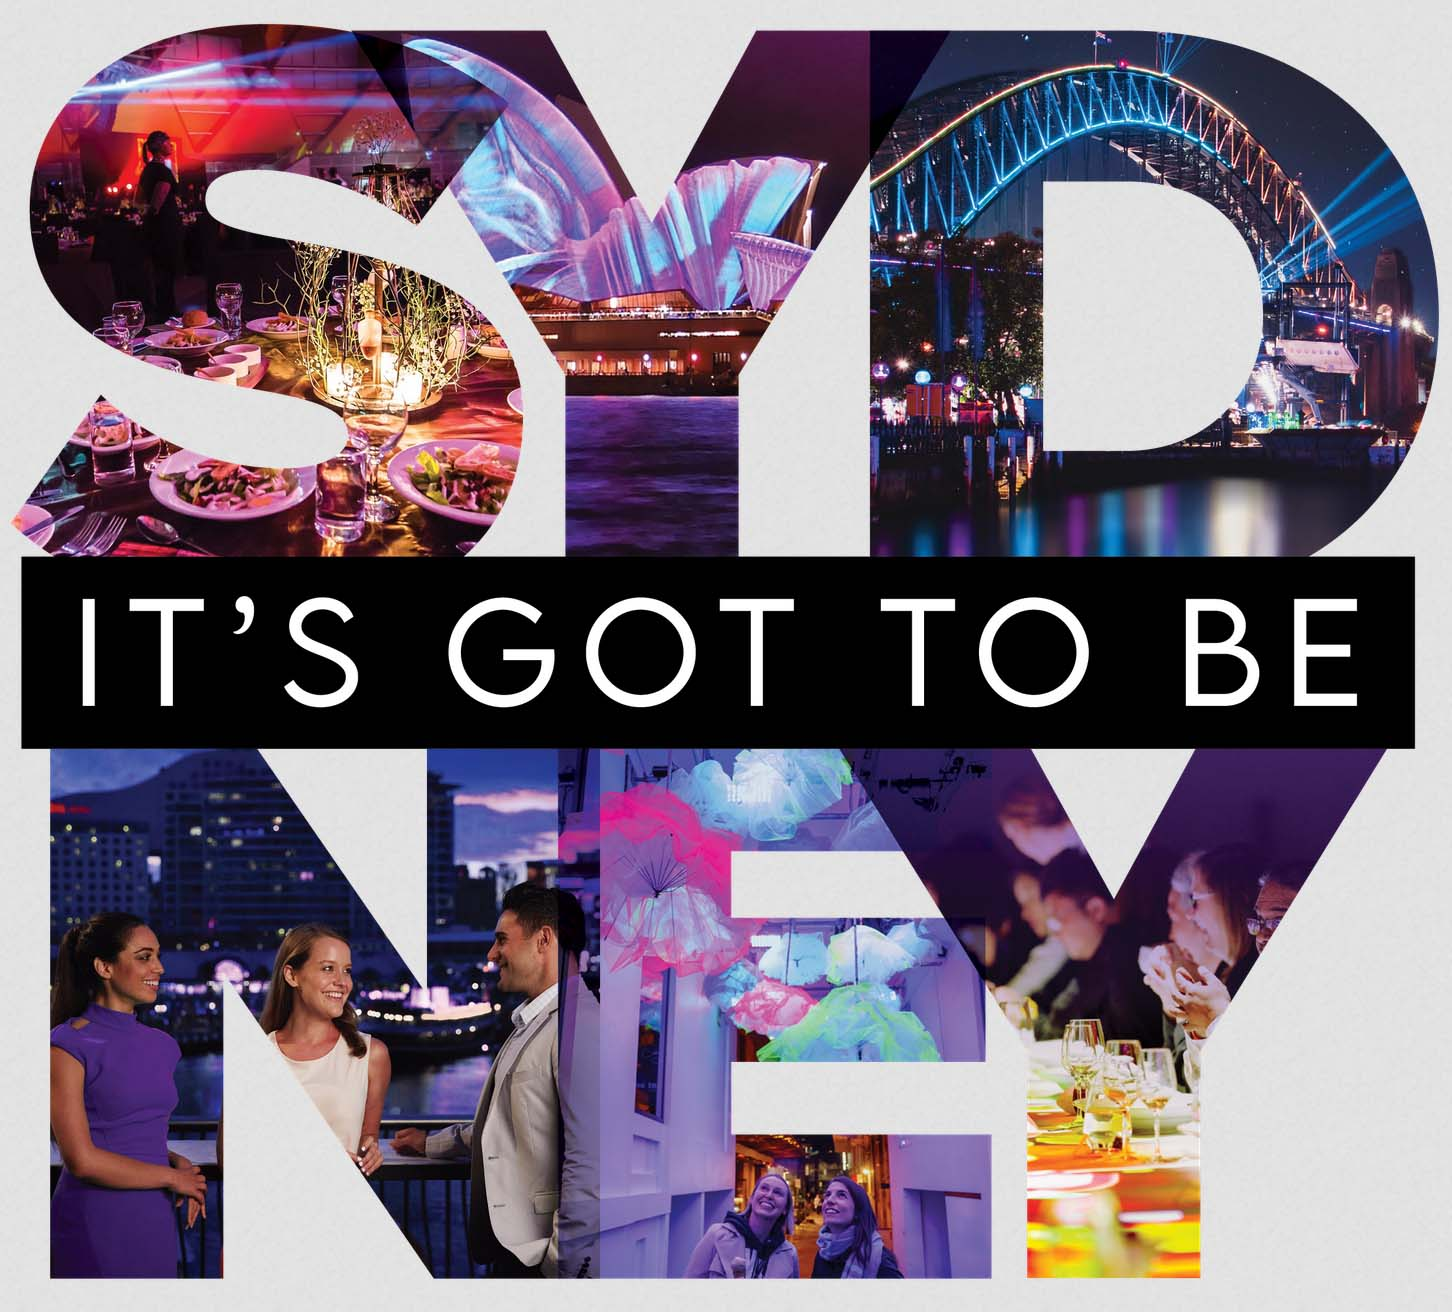 Sydney takes centre stage in new campaign via creative agency Edge to defend the city's business visitor tourism market share